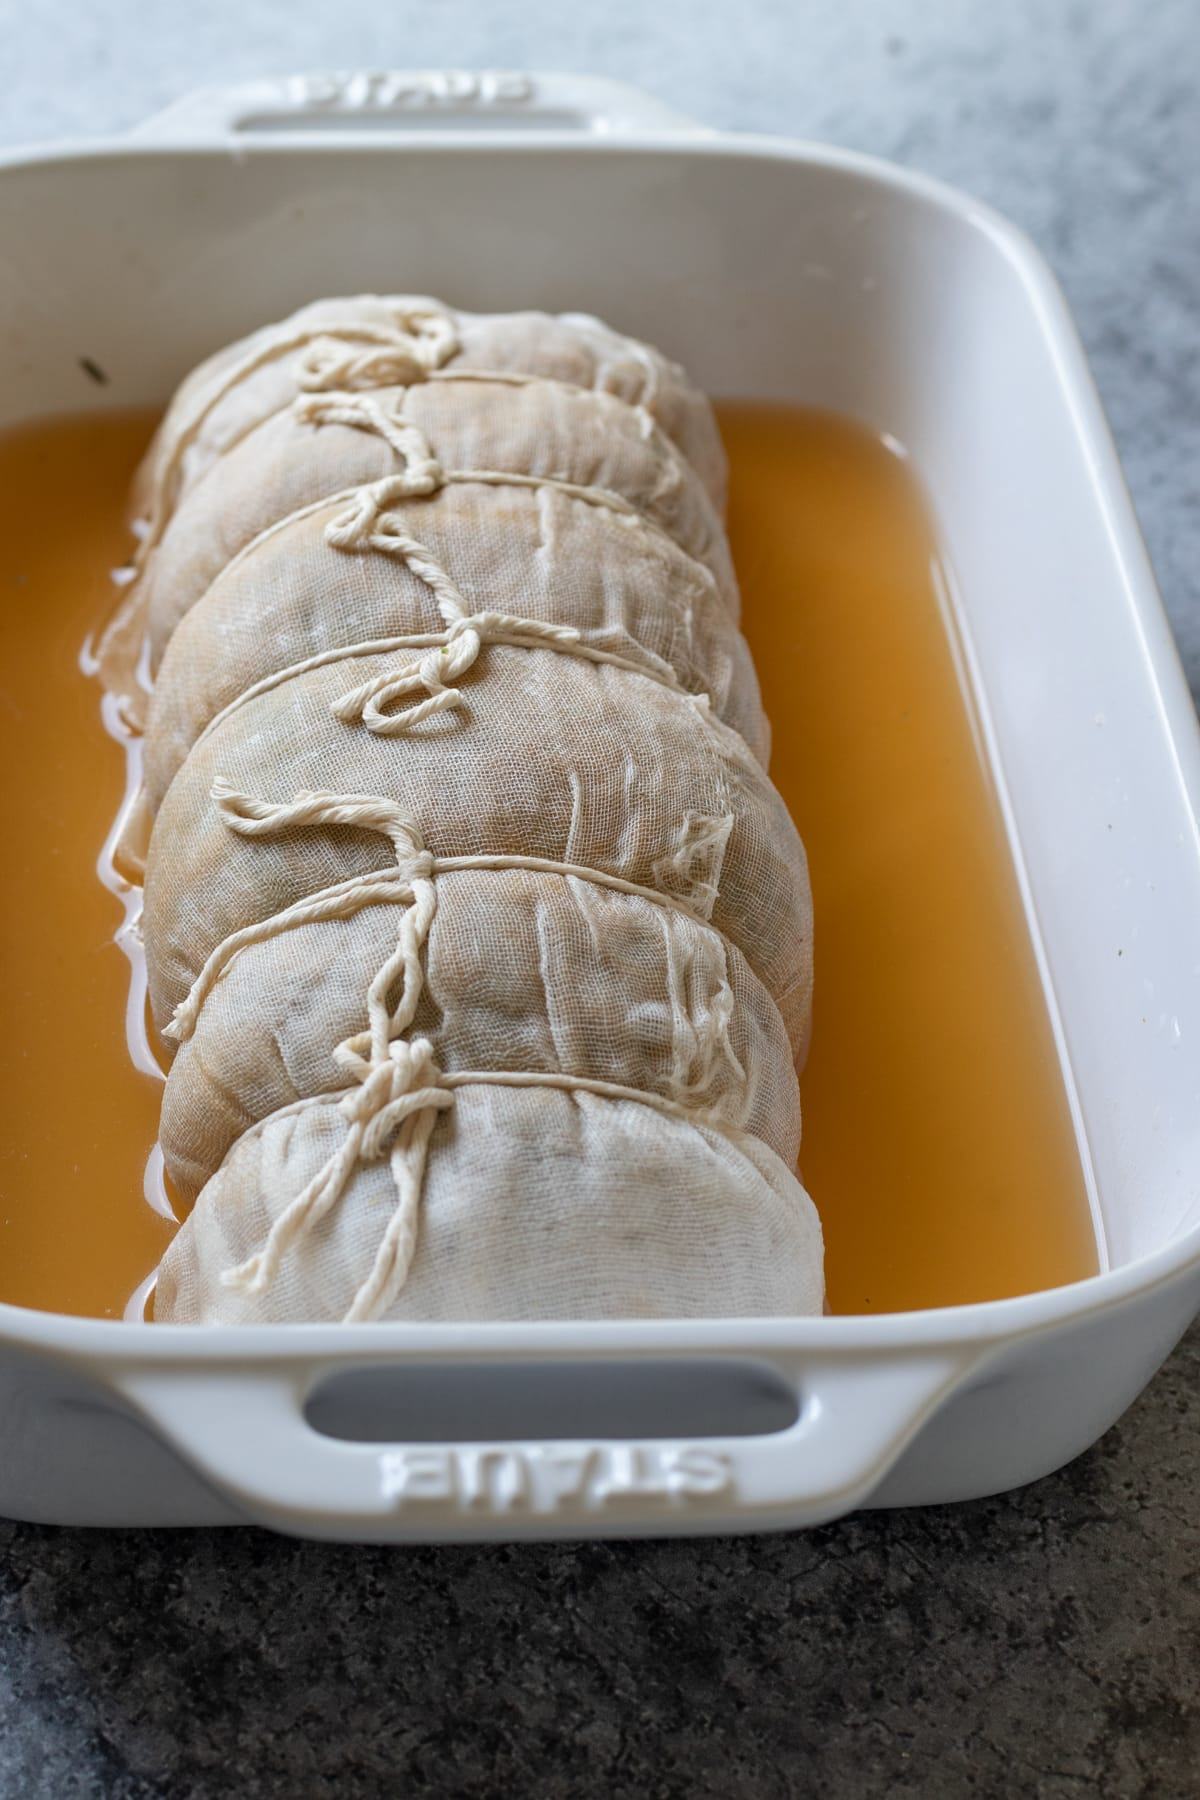 wrapped in cheese cloth, tied with twine, resting in broth in a baking dish